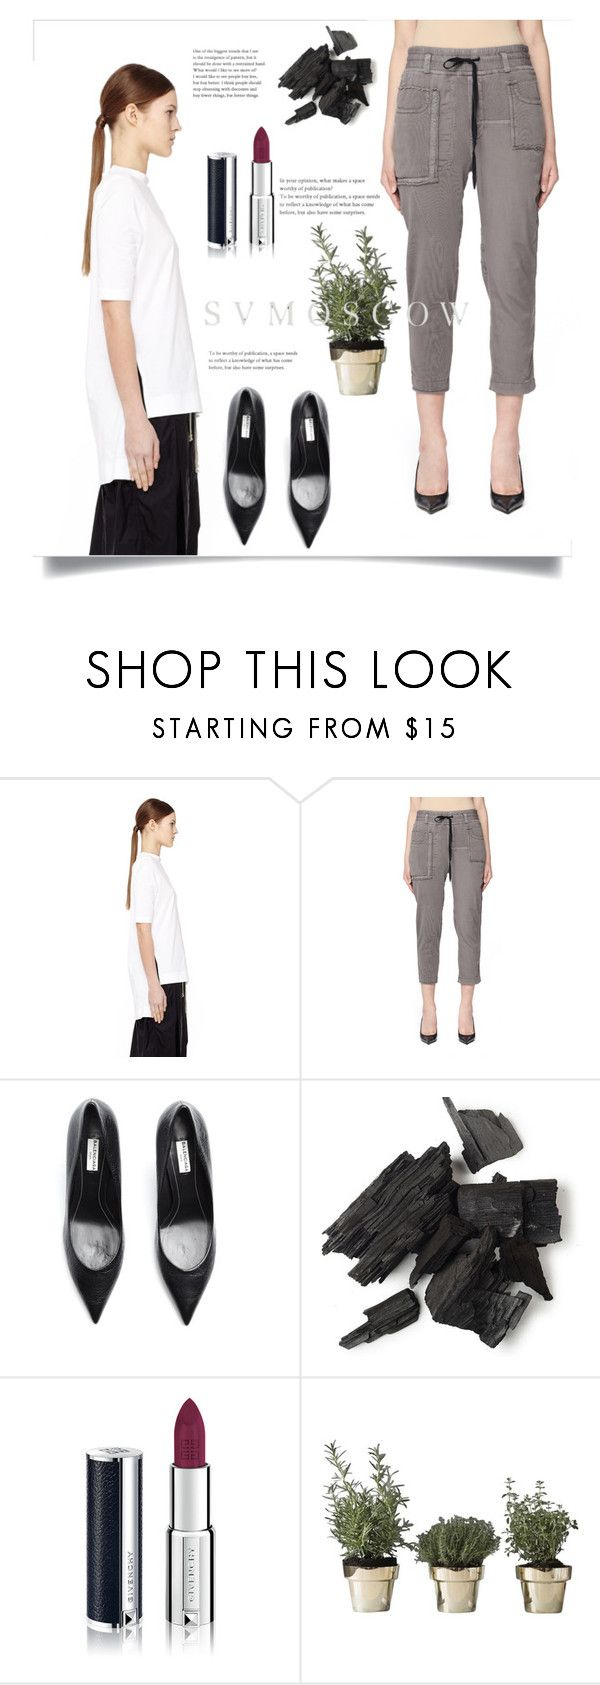 """SVMOSCOW SS'17 SALE UP TO 70% OFF"" by elly-852 ❤ liked on Polyvore featuring Y-3, Haider Ackermann, Balenciaga, Givenchy and Skultuna"